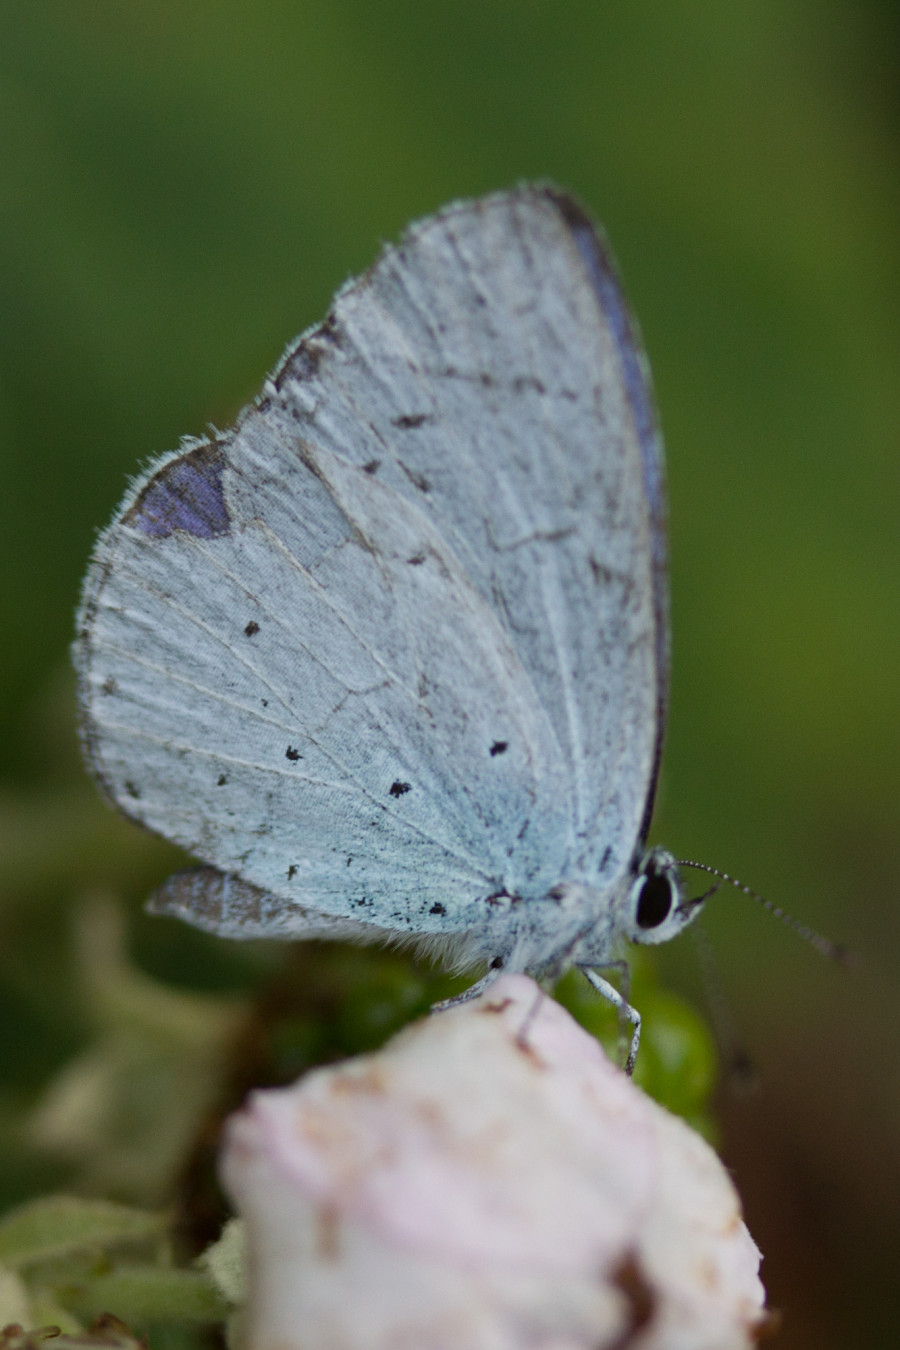 Blue butterflies have been spotted across the farm.